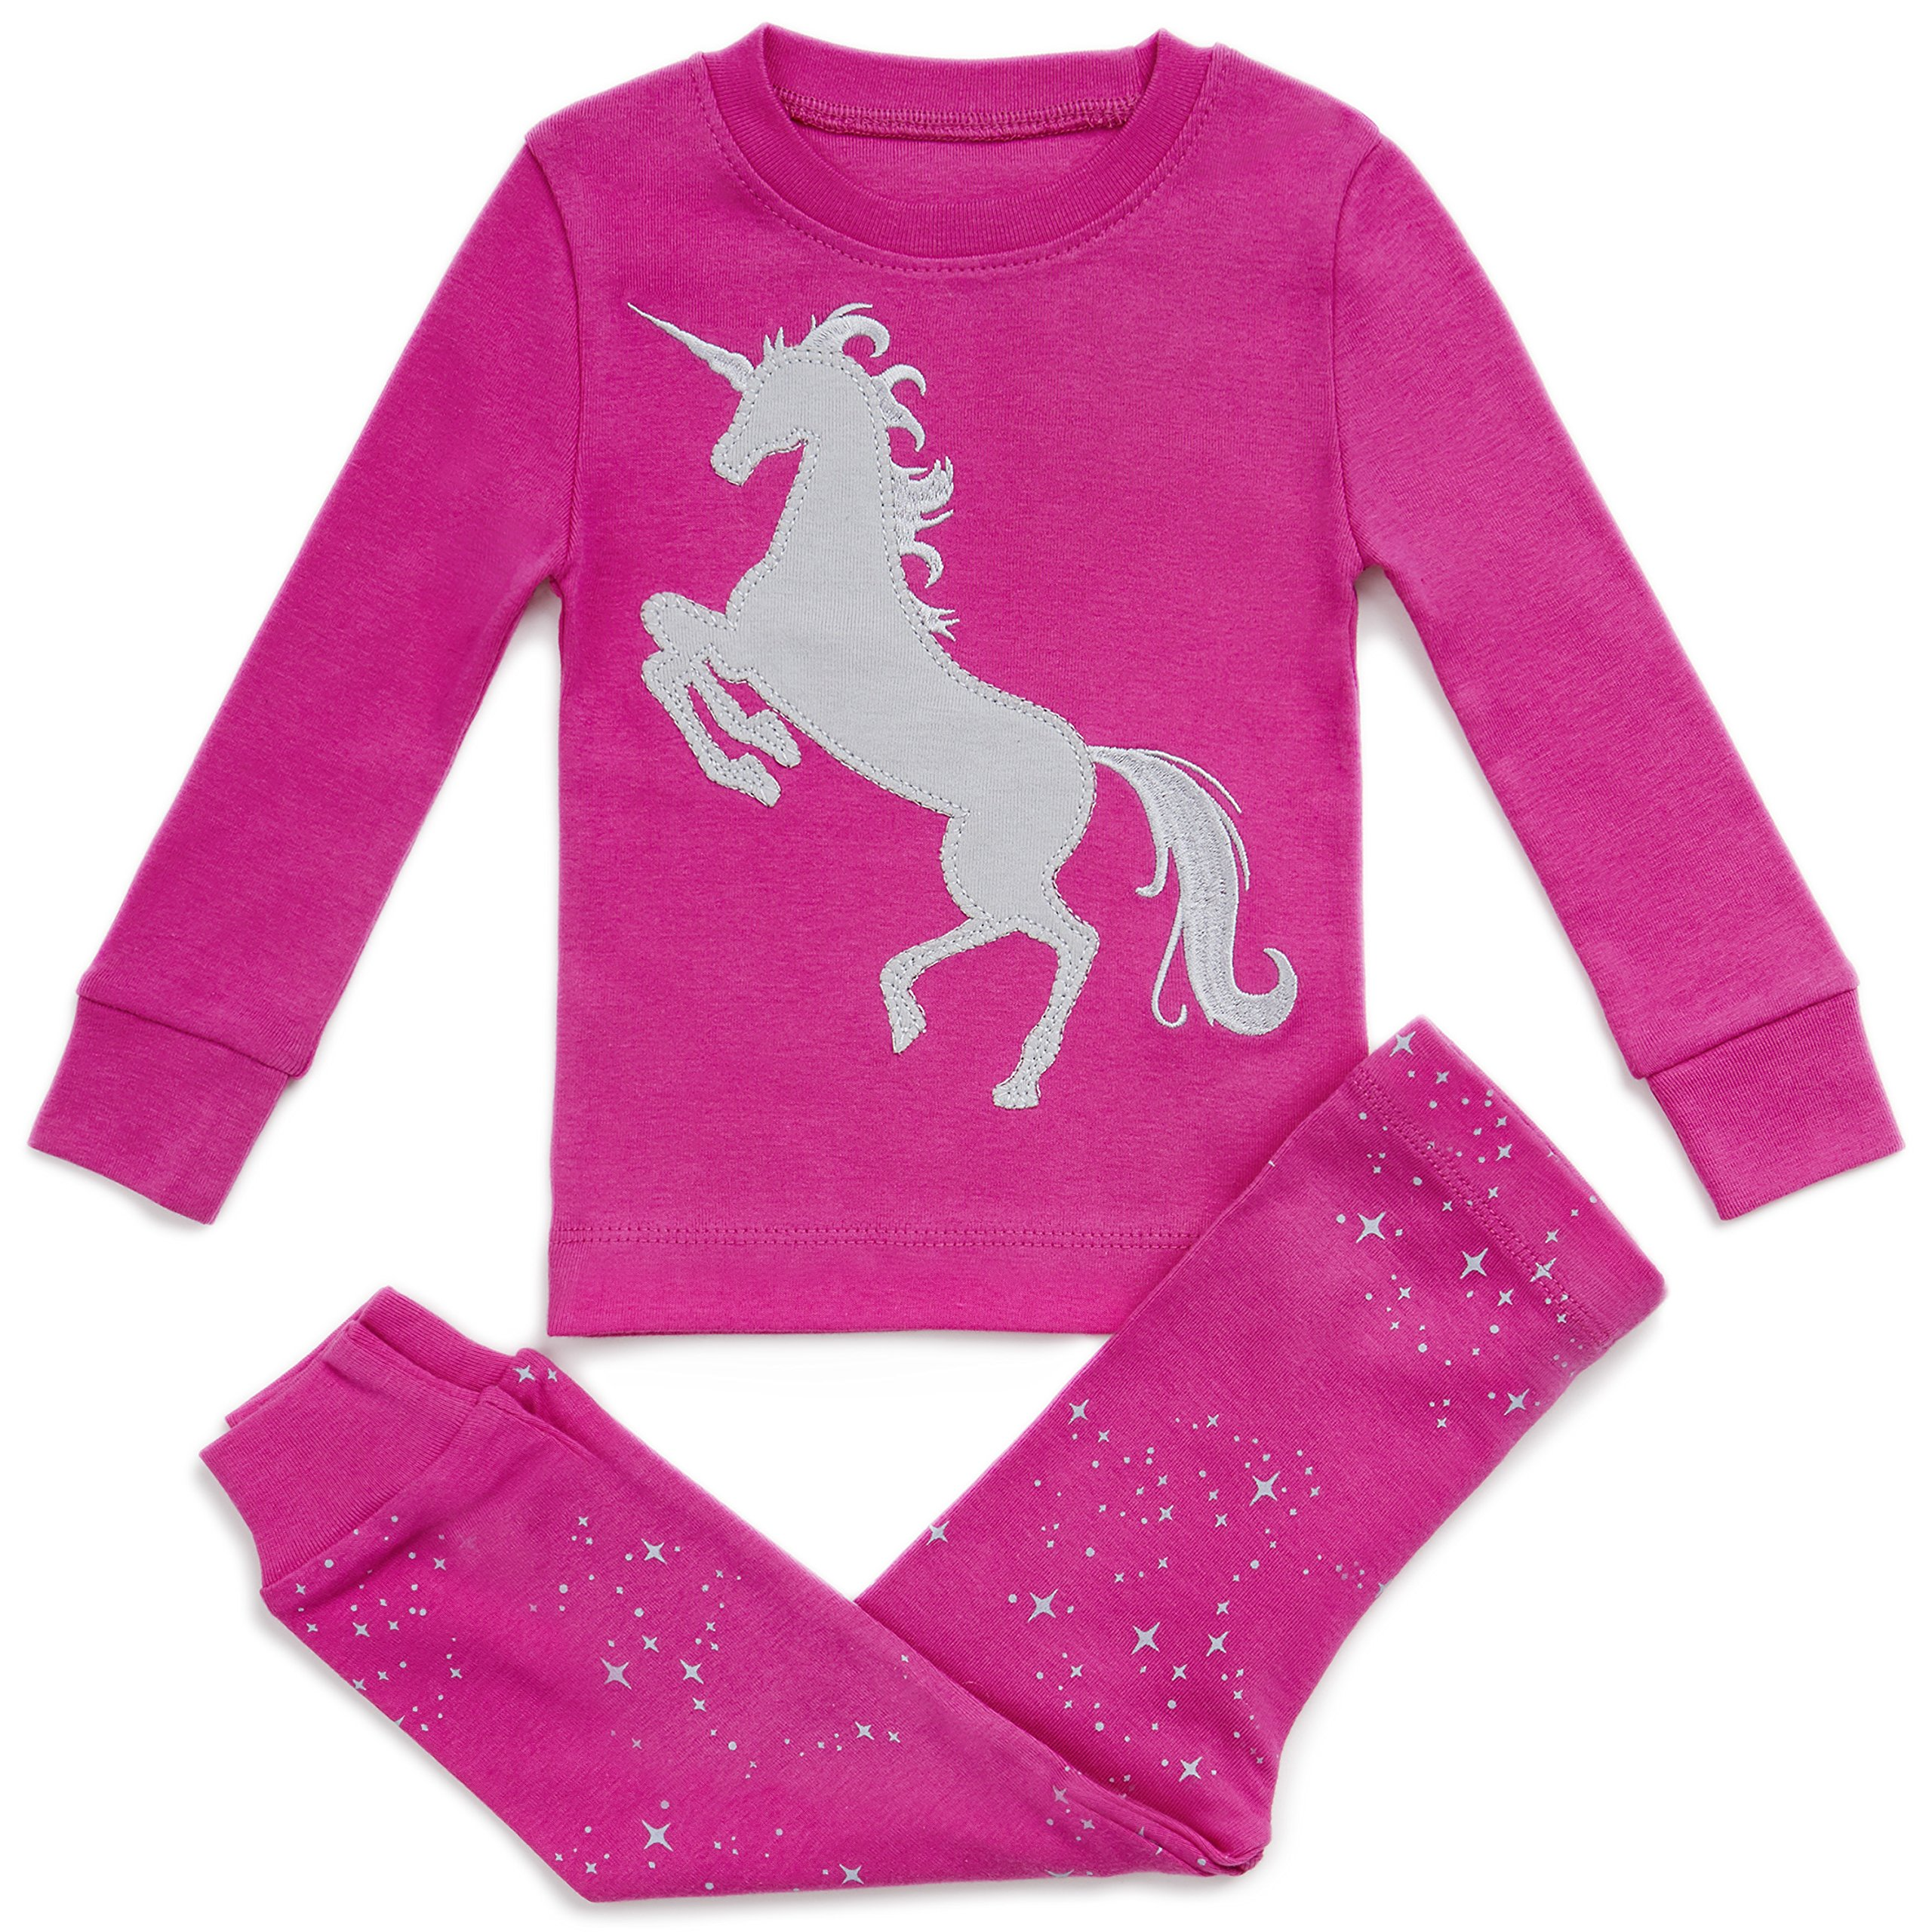 SUPER SOFT UNICORN 2 PIECE PAJAMA SET 100% COTTON+2 FREE GIFTS, Pink / Grey, 5 Years